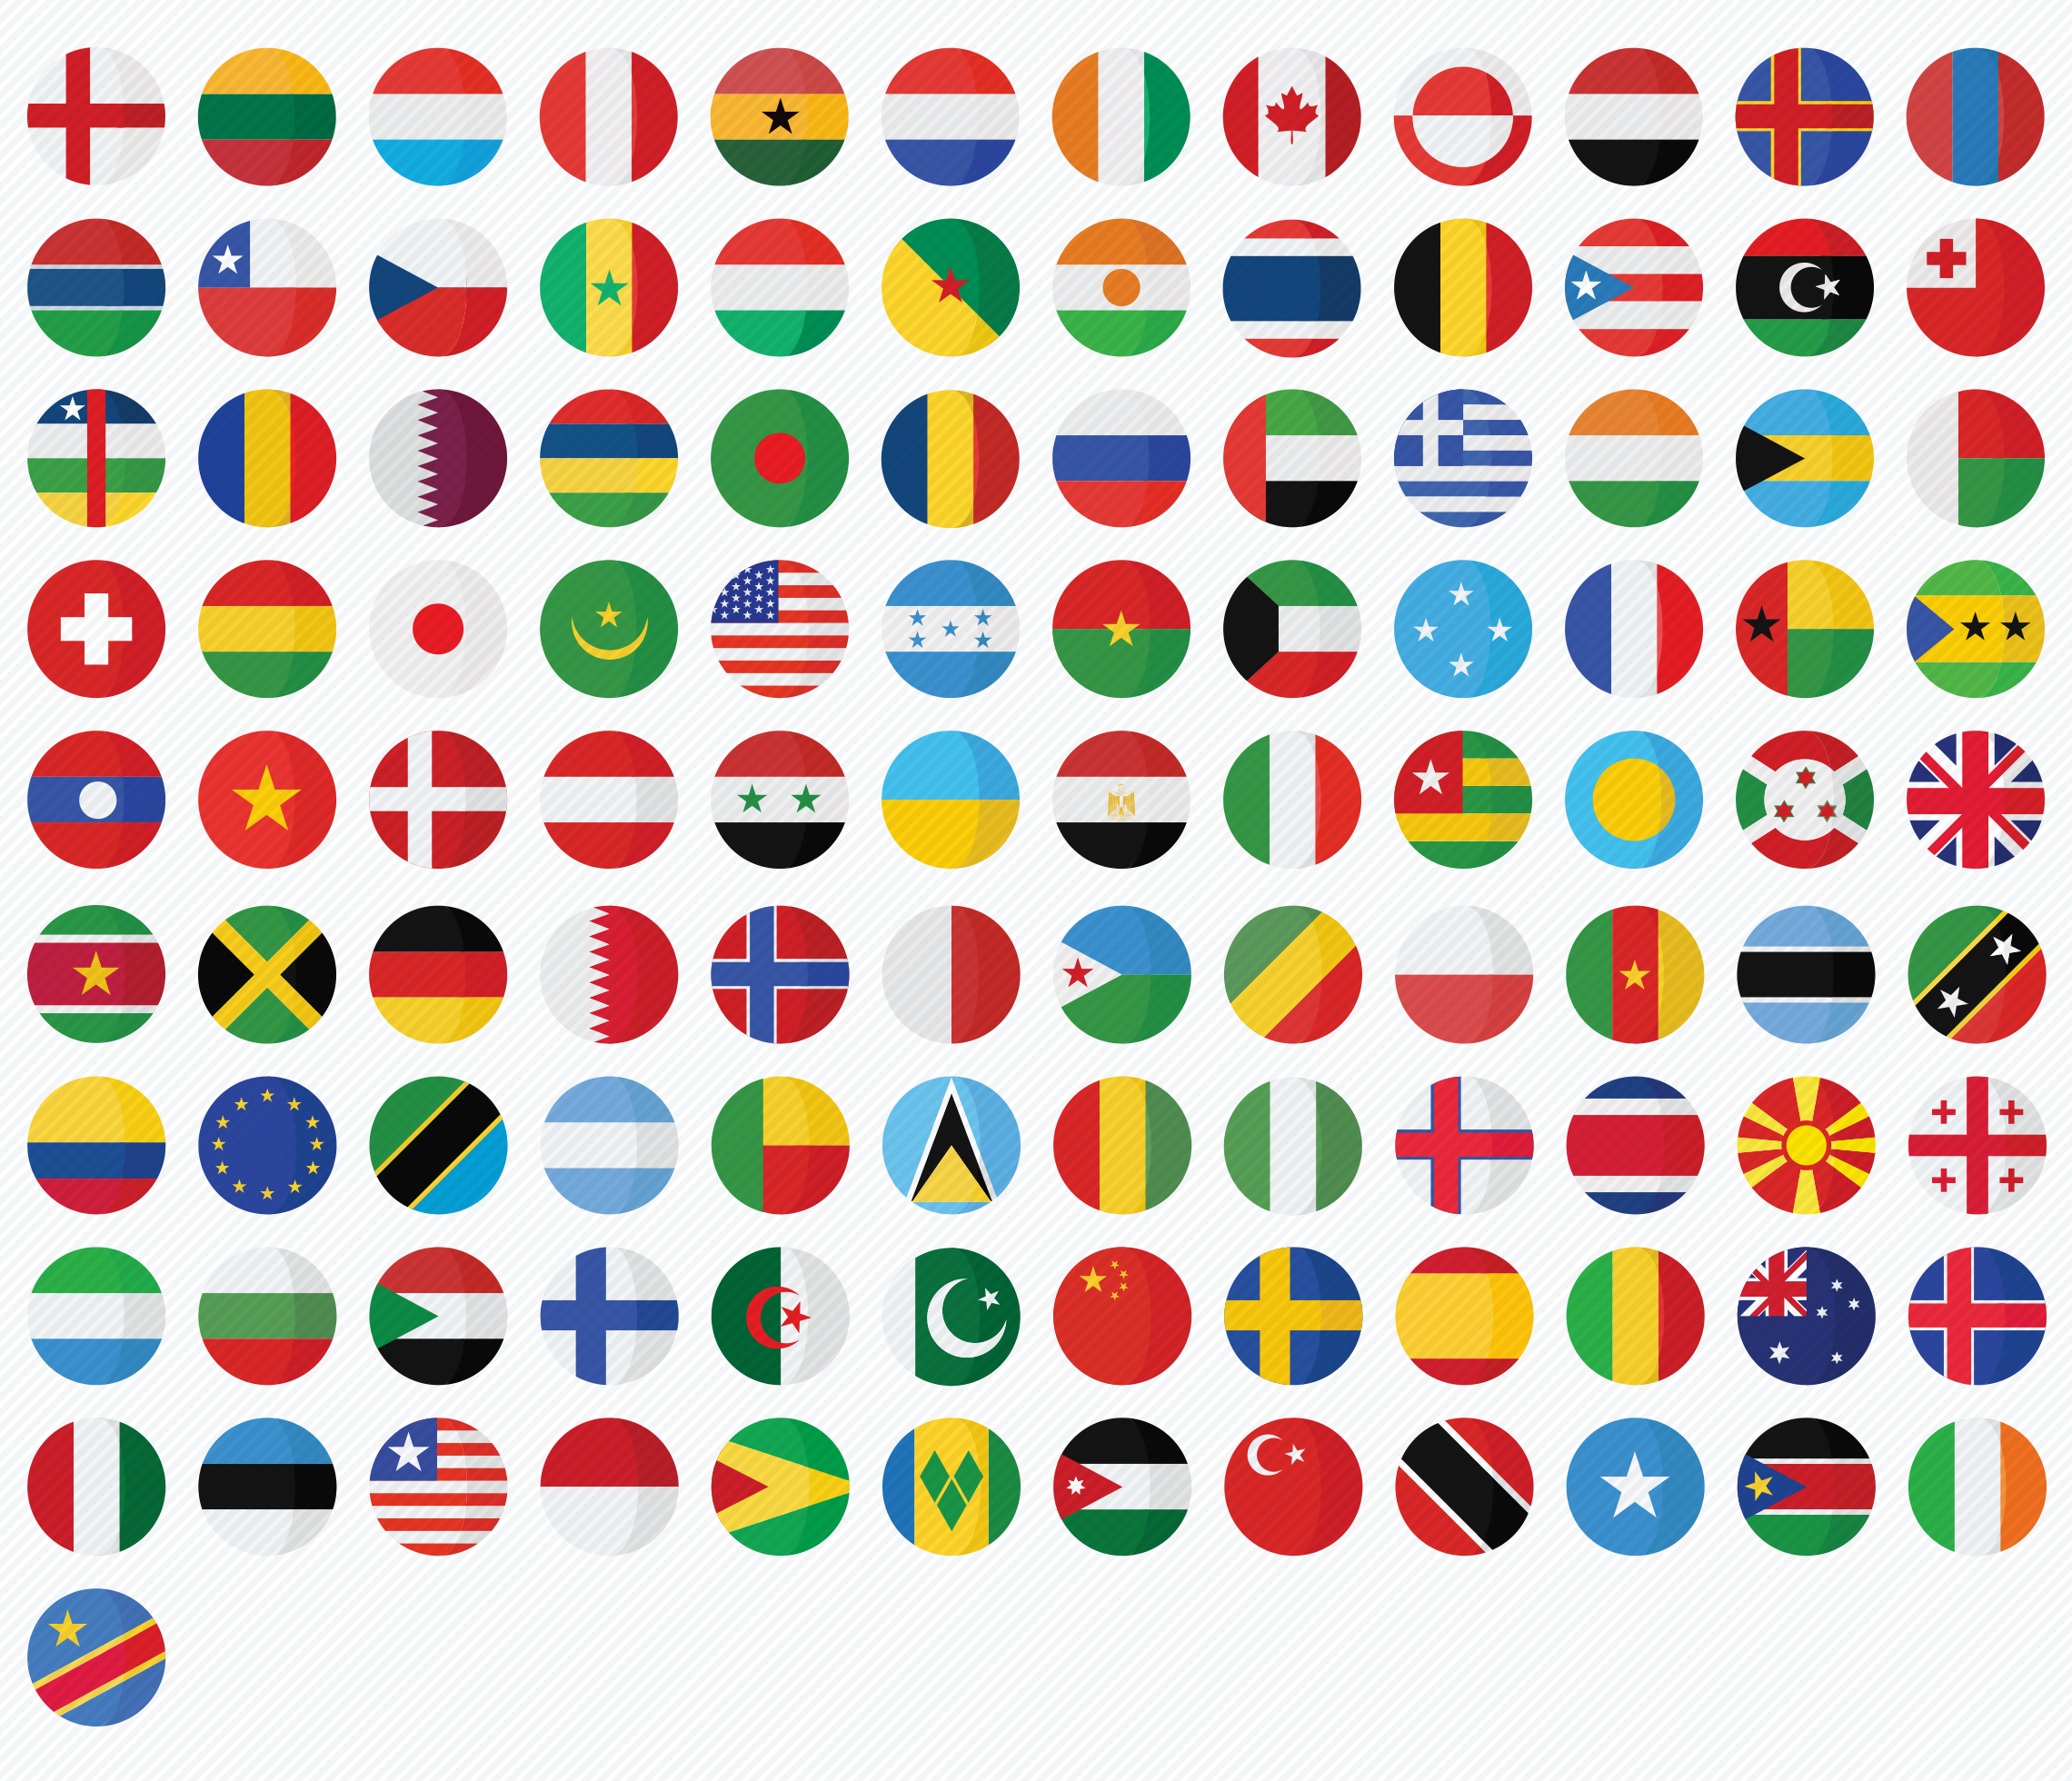 country-flags-flat-icons-set | Icons | Pinterest | Icon ...